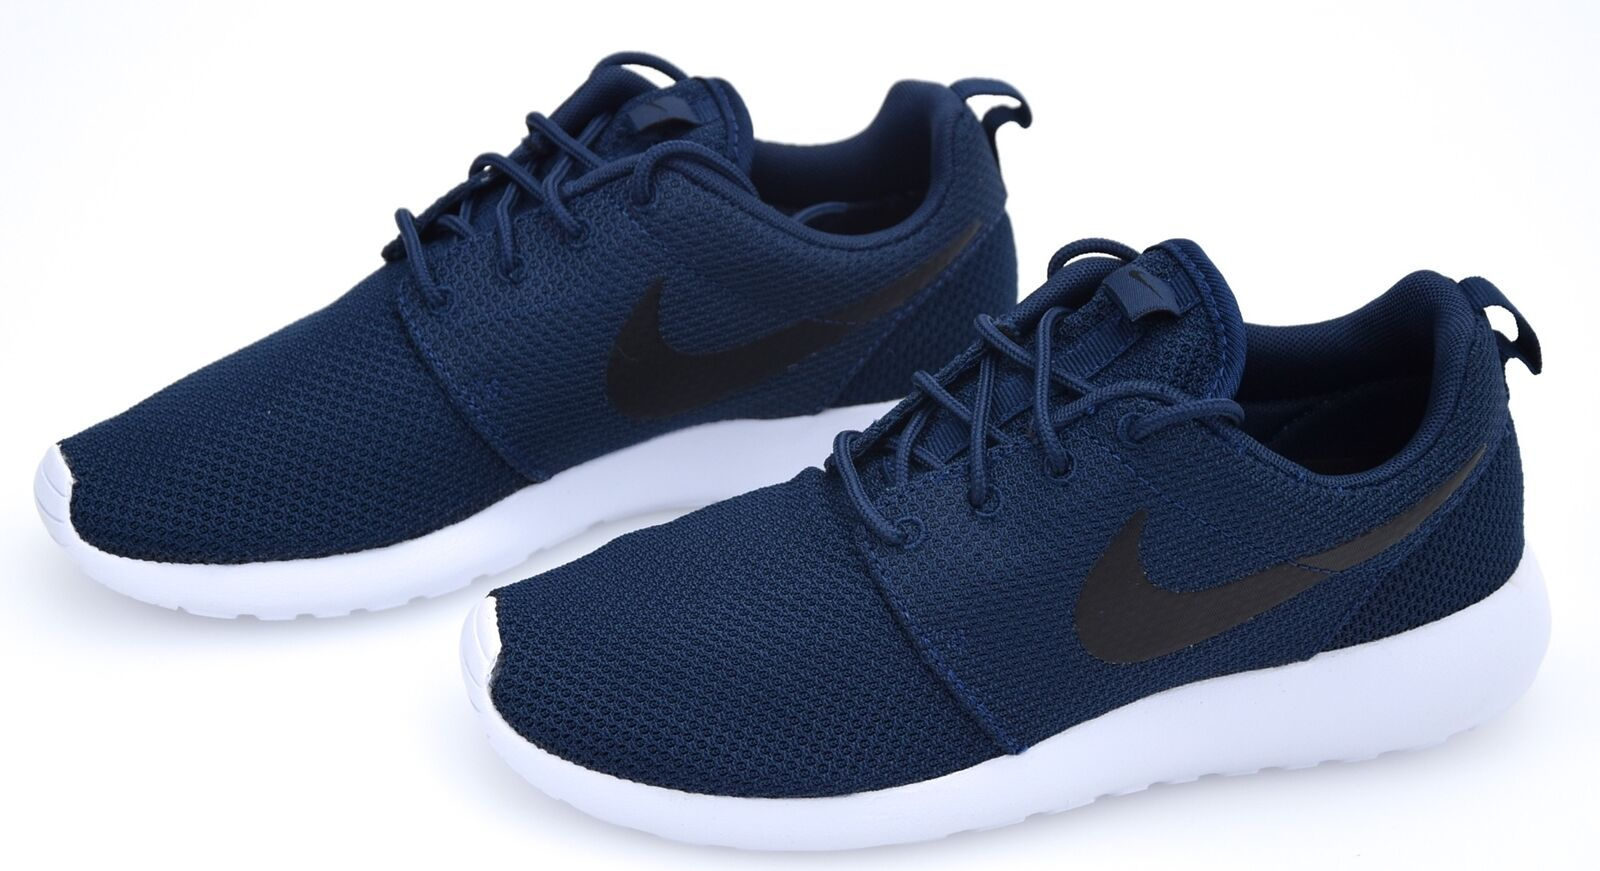 NIKE MAN SNEAKER SHOES CASUAL FREE TIME TIME TIME SYNTHETIC CODE 511881 NIKE ROSHE ONE 693fab